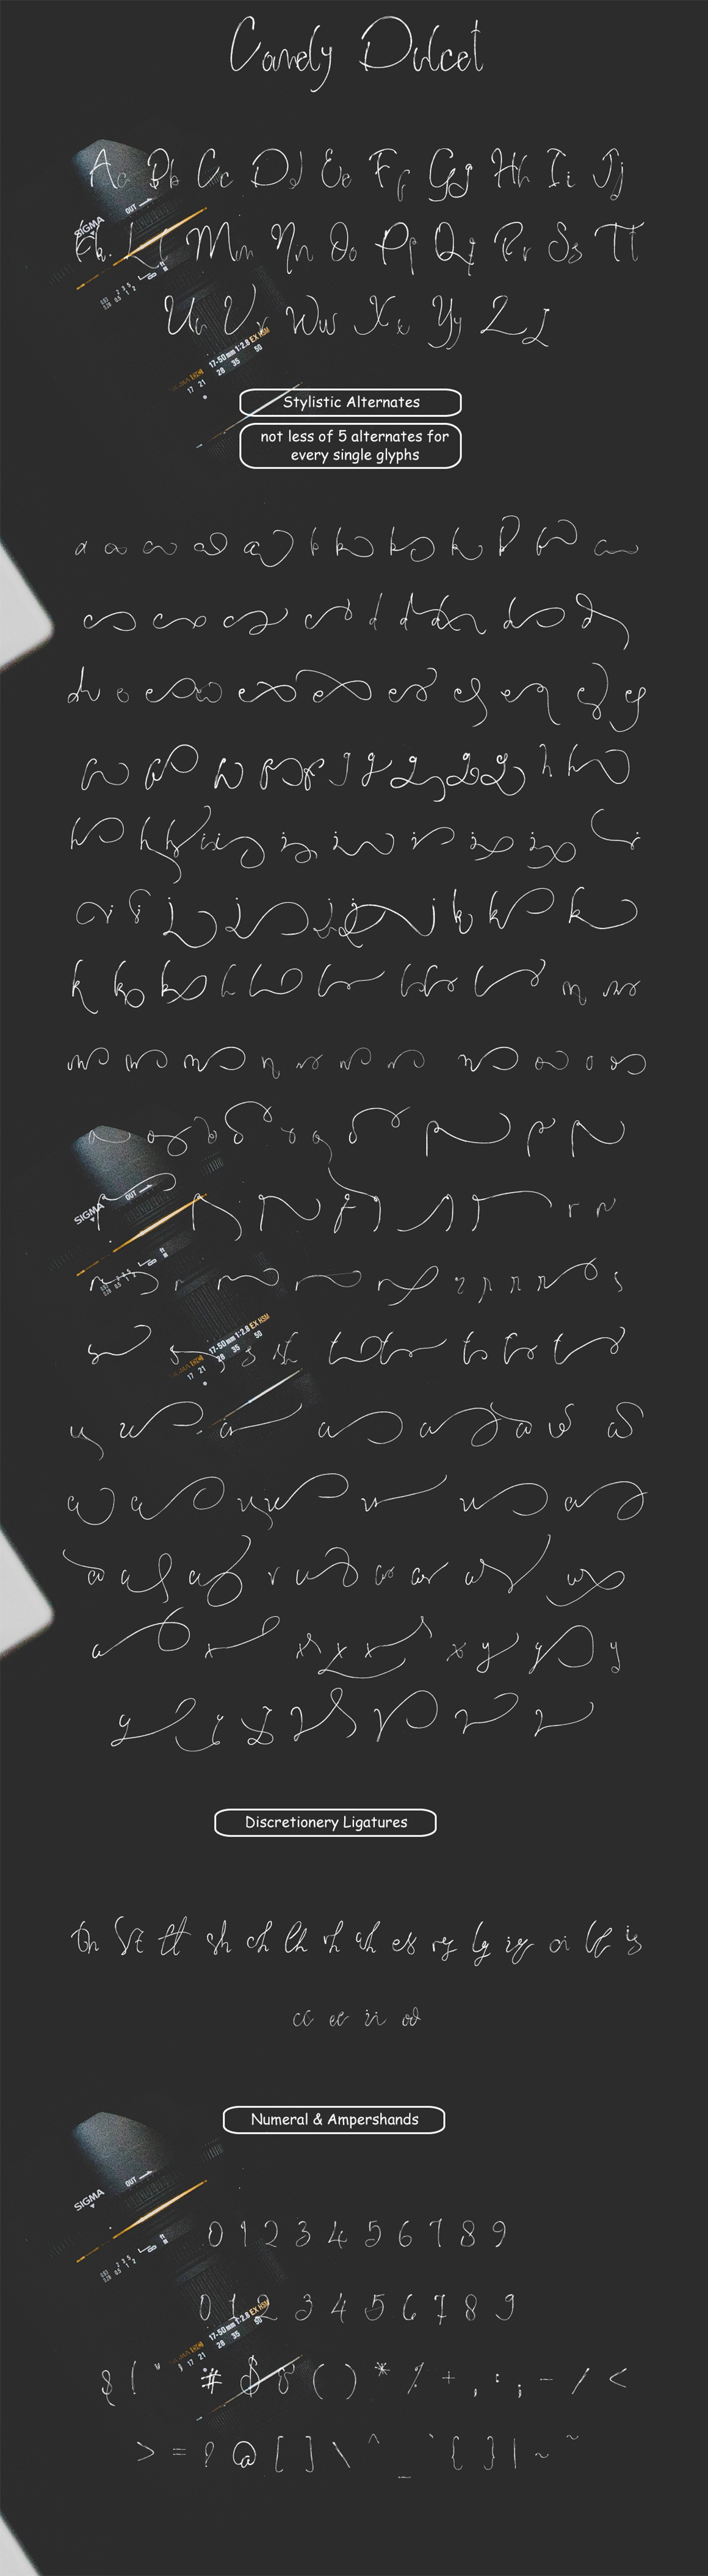 Comely Dulcet Brush Script example image 6